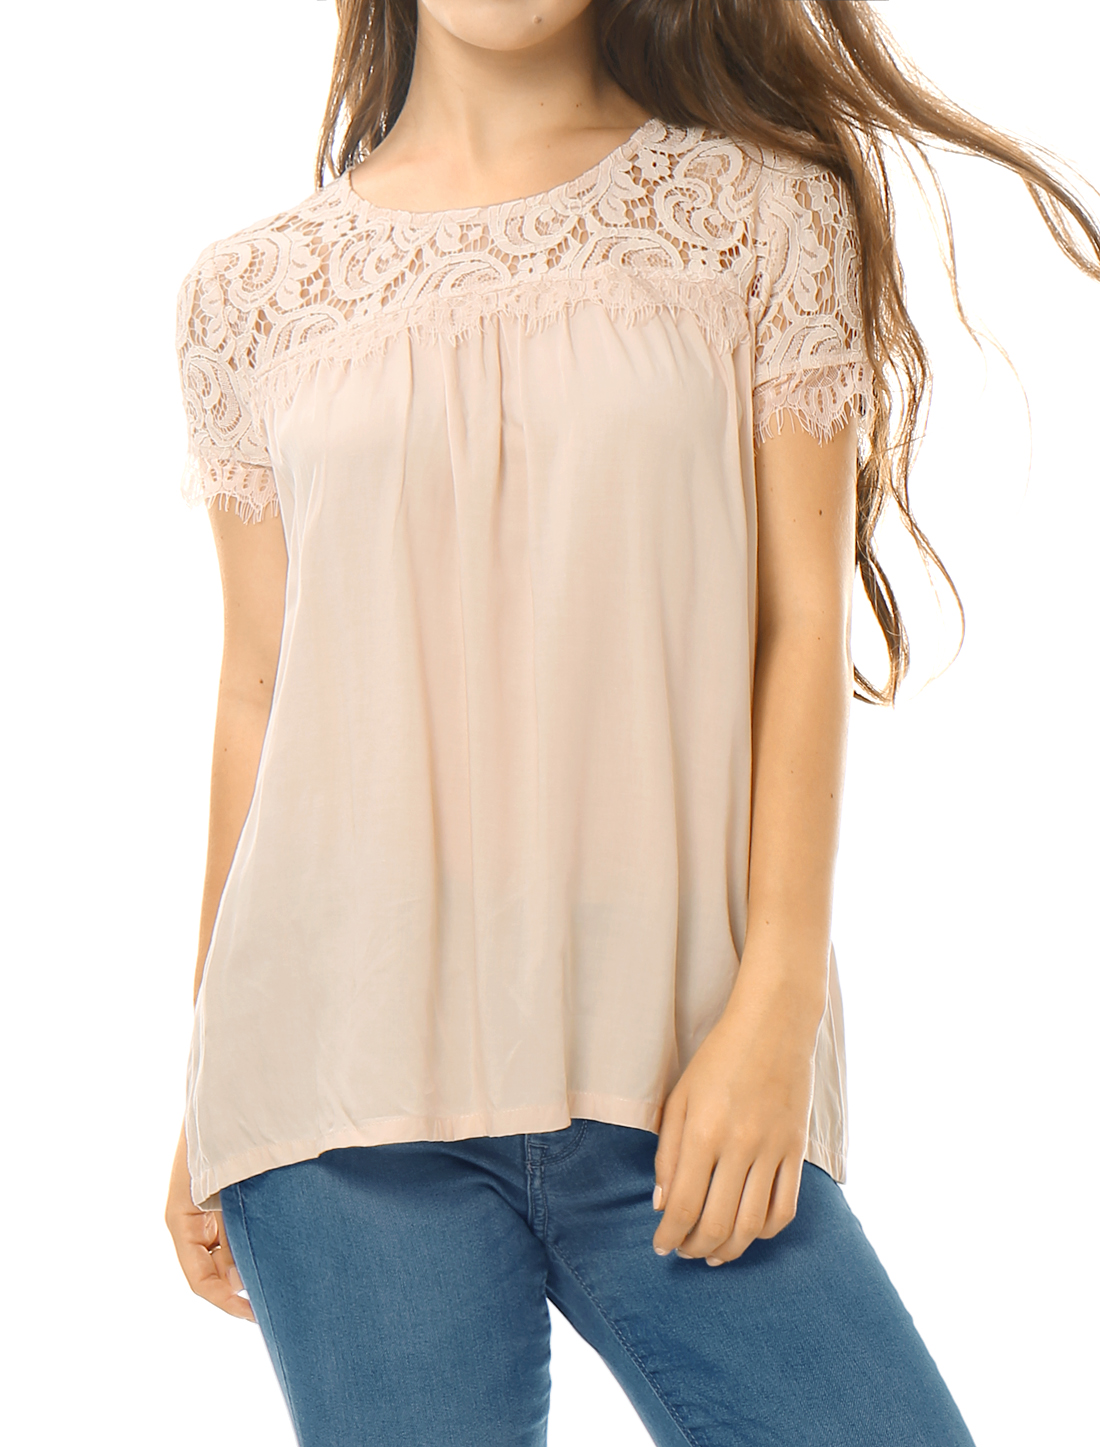 Women Lace Panel Upper Semi Sheer Yoke Short Sleeves Blouse Pink XS